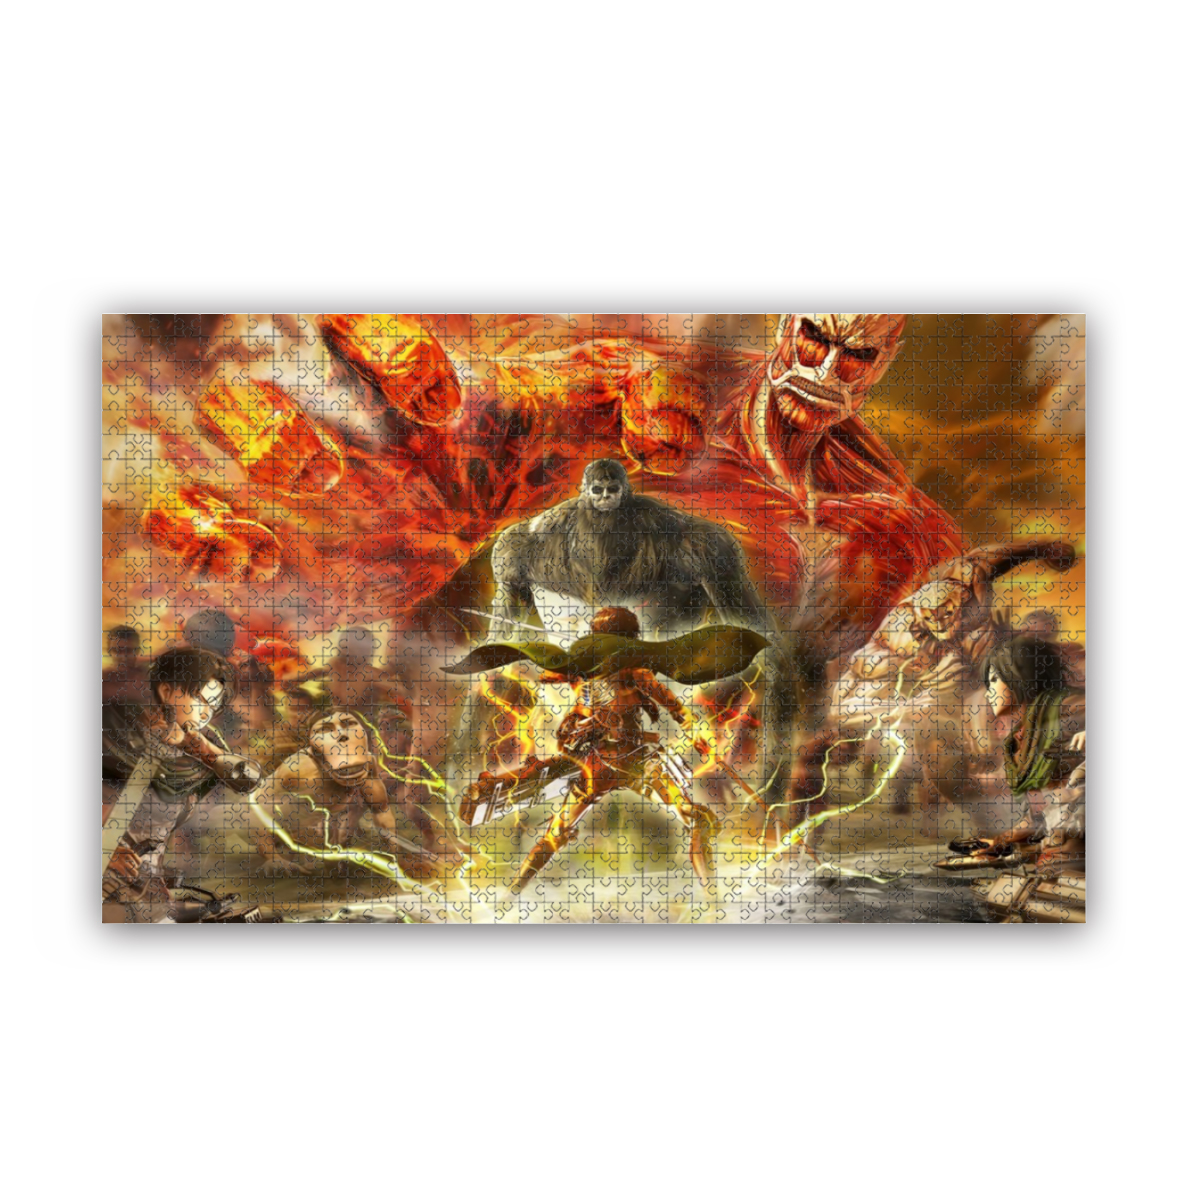 Attack On Titan Puzzle, 300 / 500 / 1000 Pc Puzzle, Casual Game, Adult Game OsZA